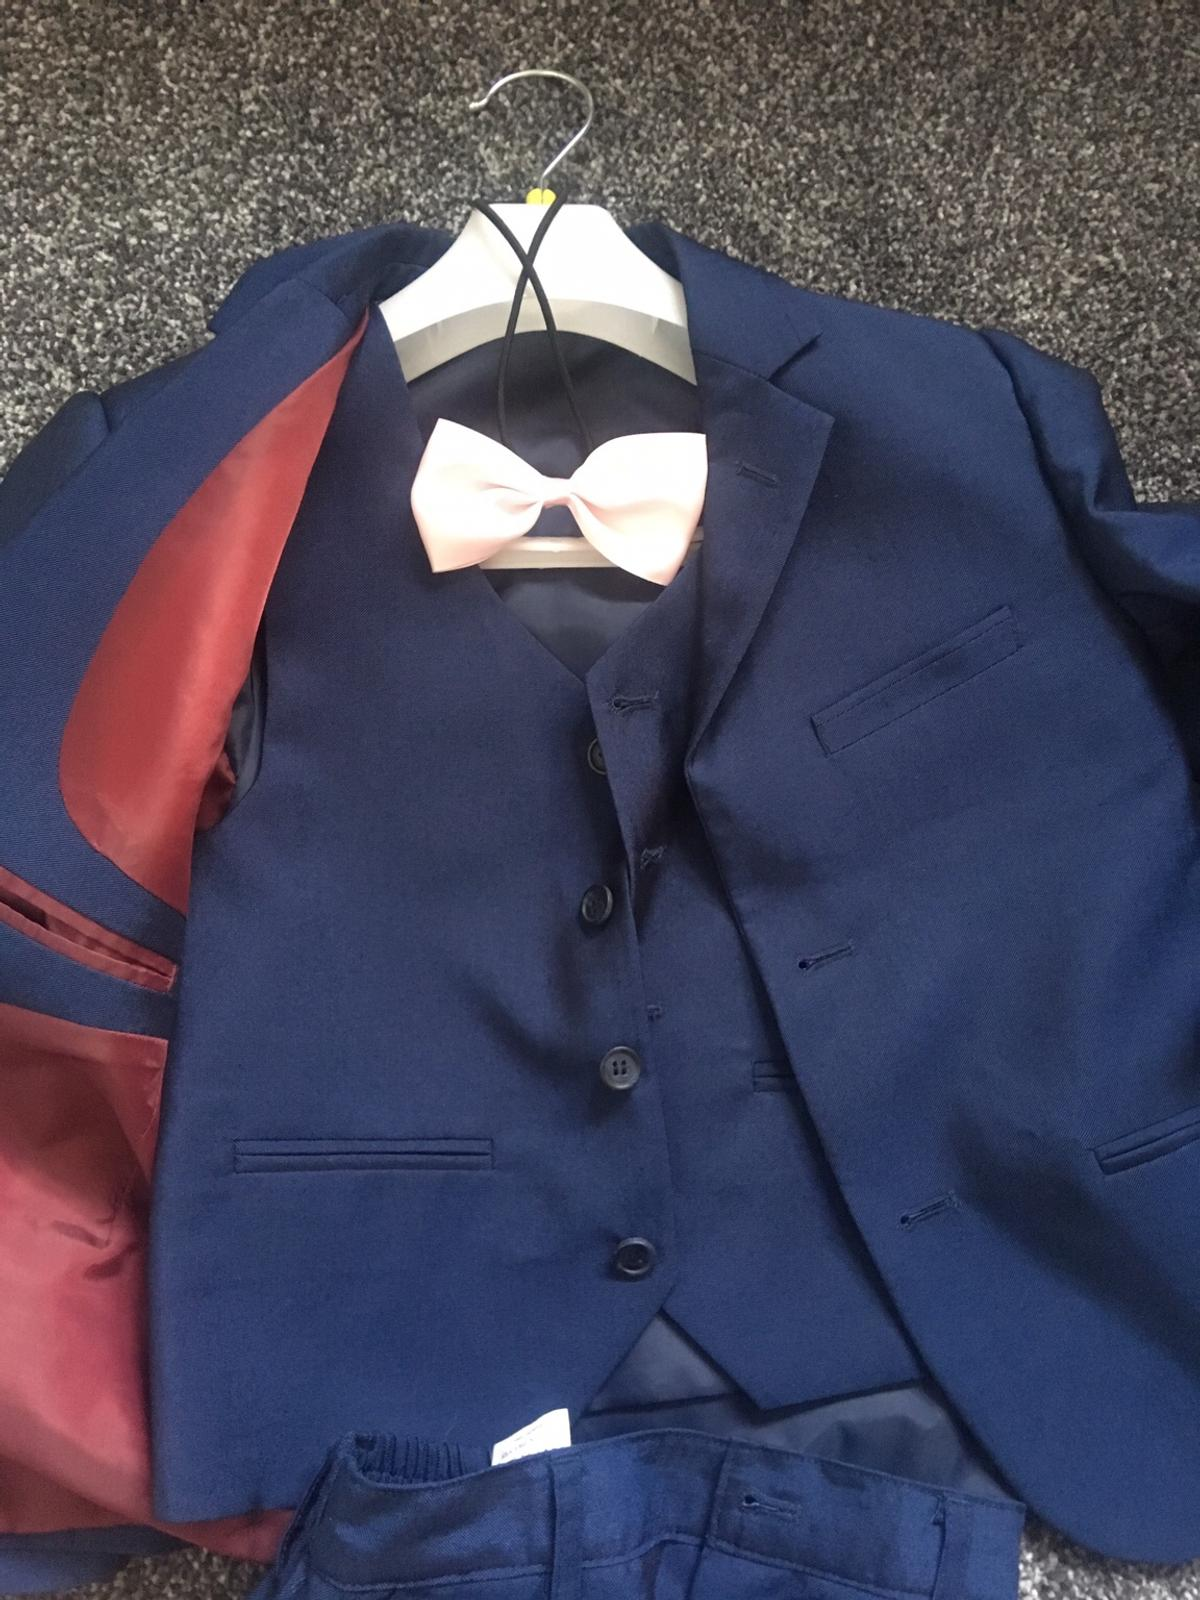 small mark on the knee great condition otherwise. Blue with pink bow tie. £10 each